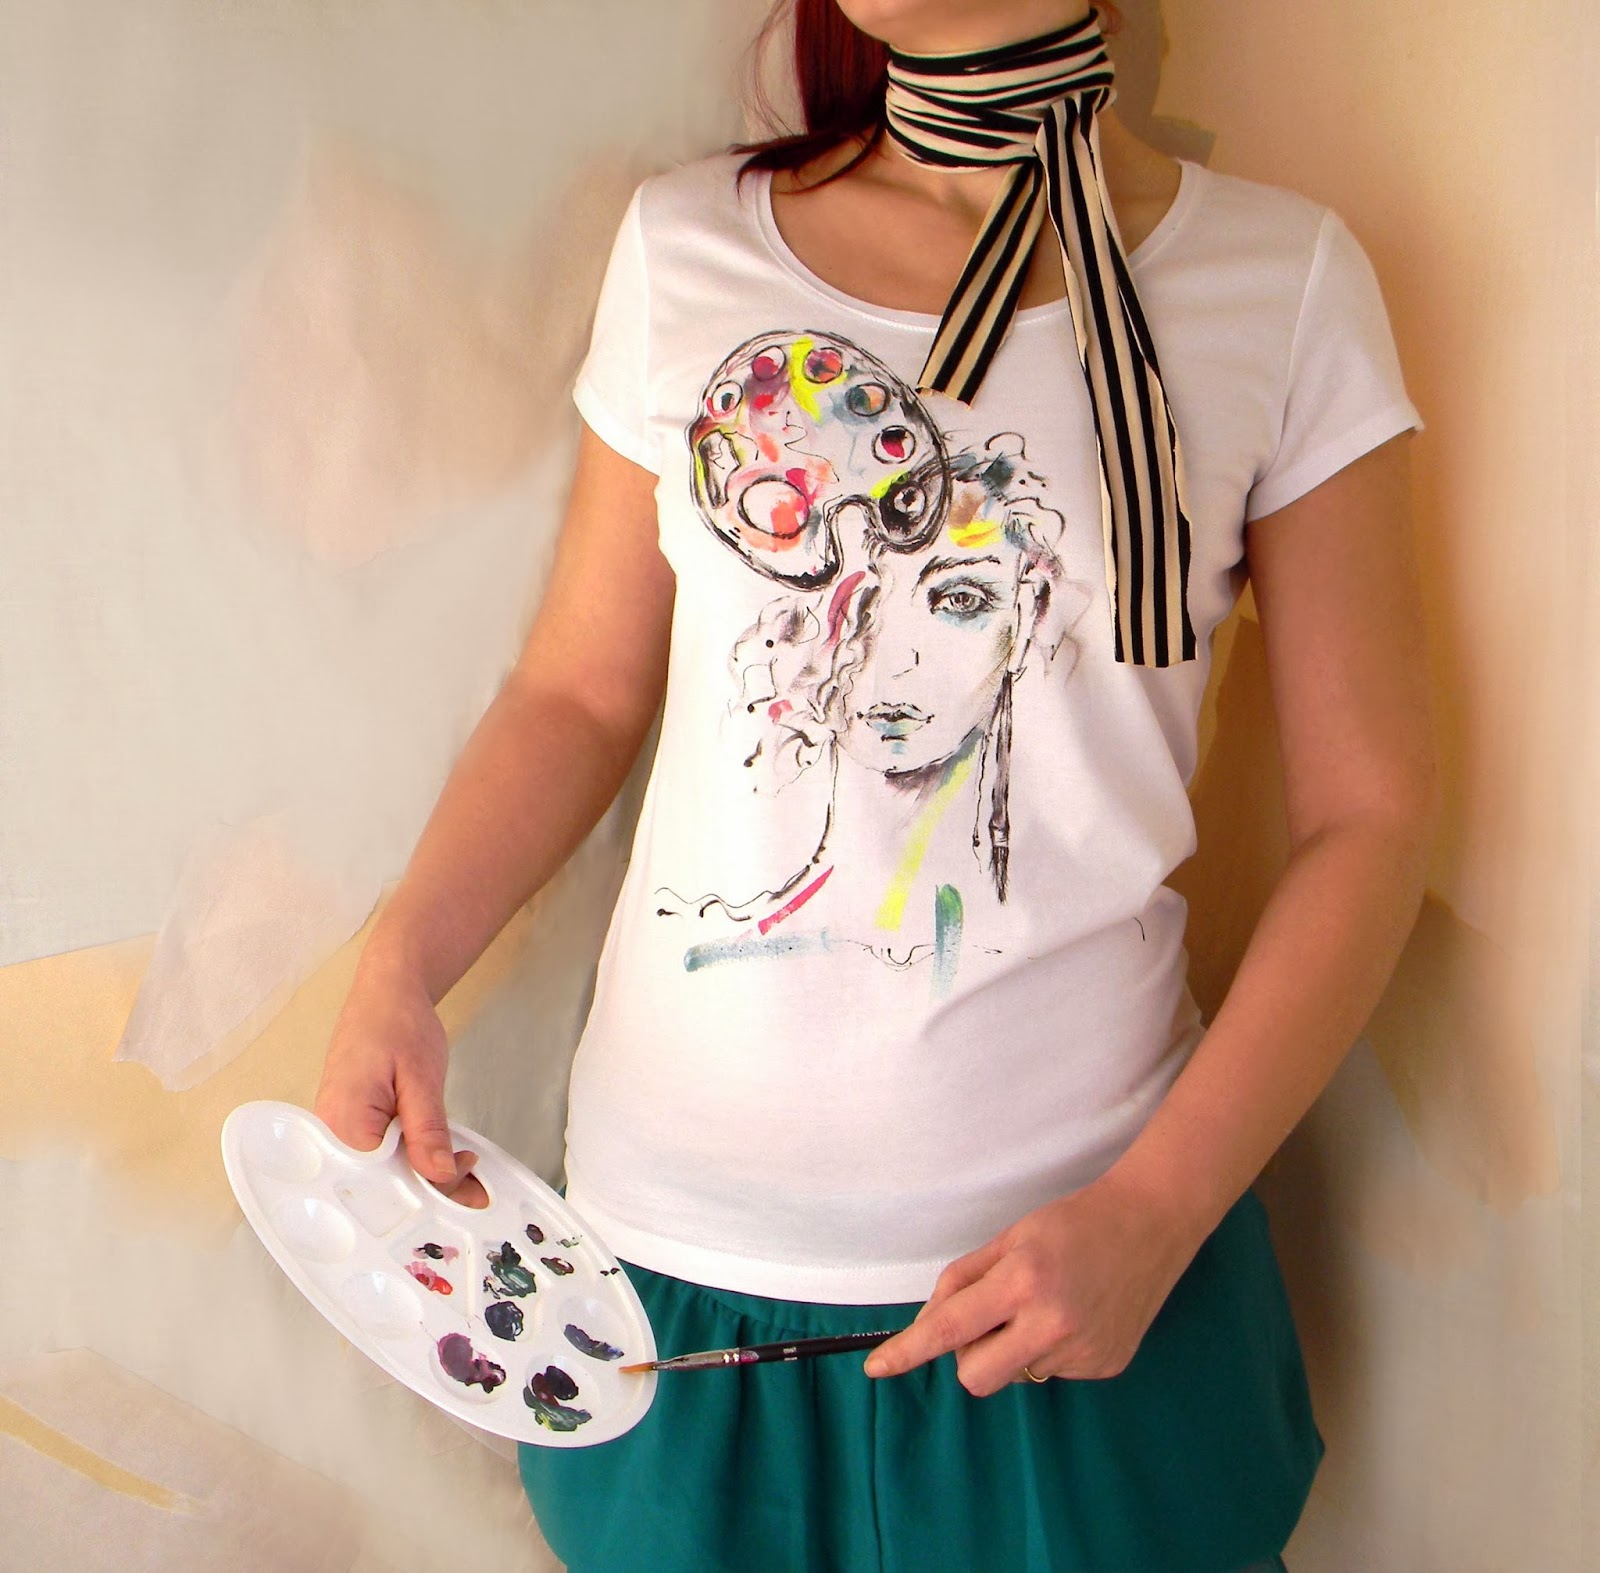 Cotton Knit Tshirt with Hand Painted Fashion Illustration and Fancy Striped Scarf or Belt-L Size